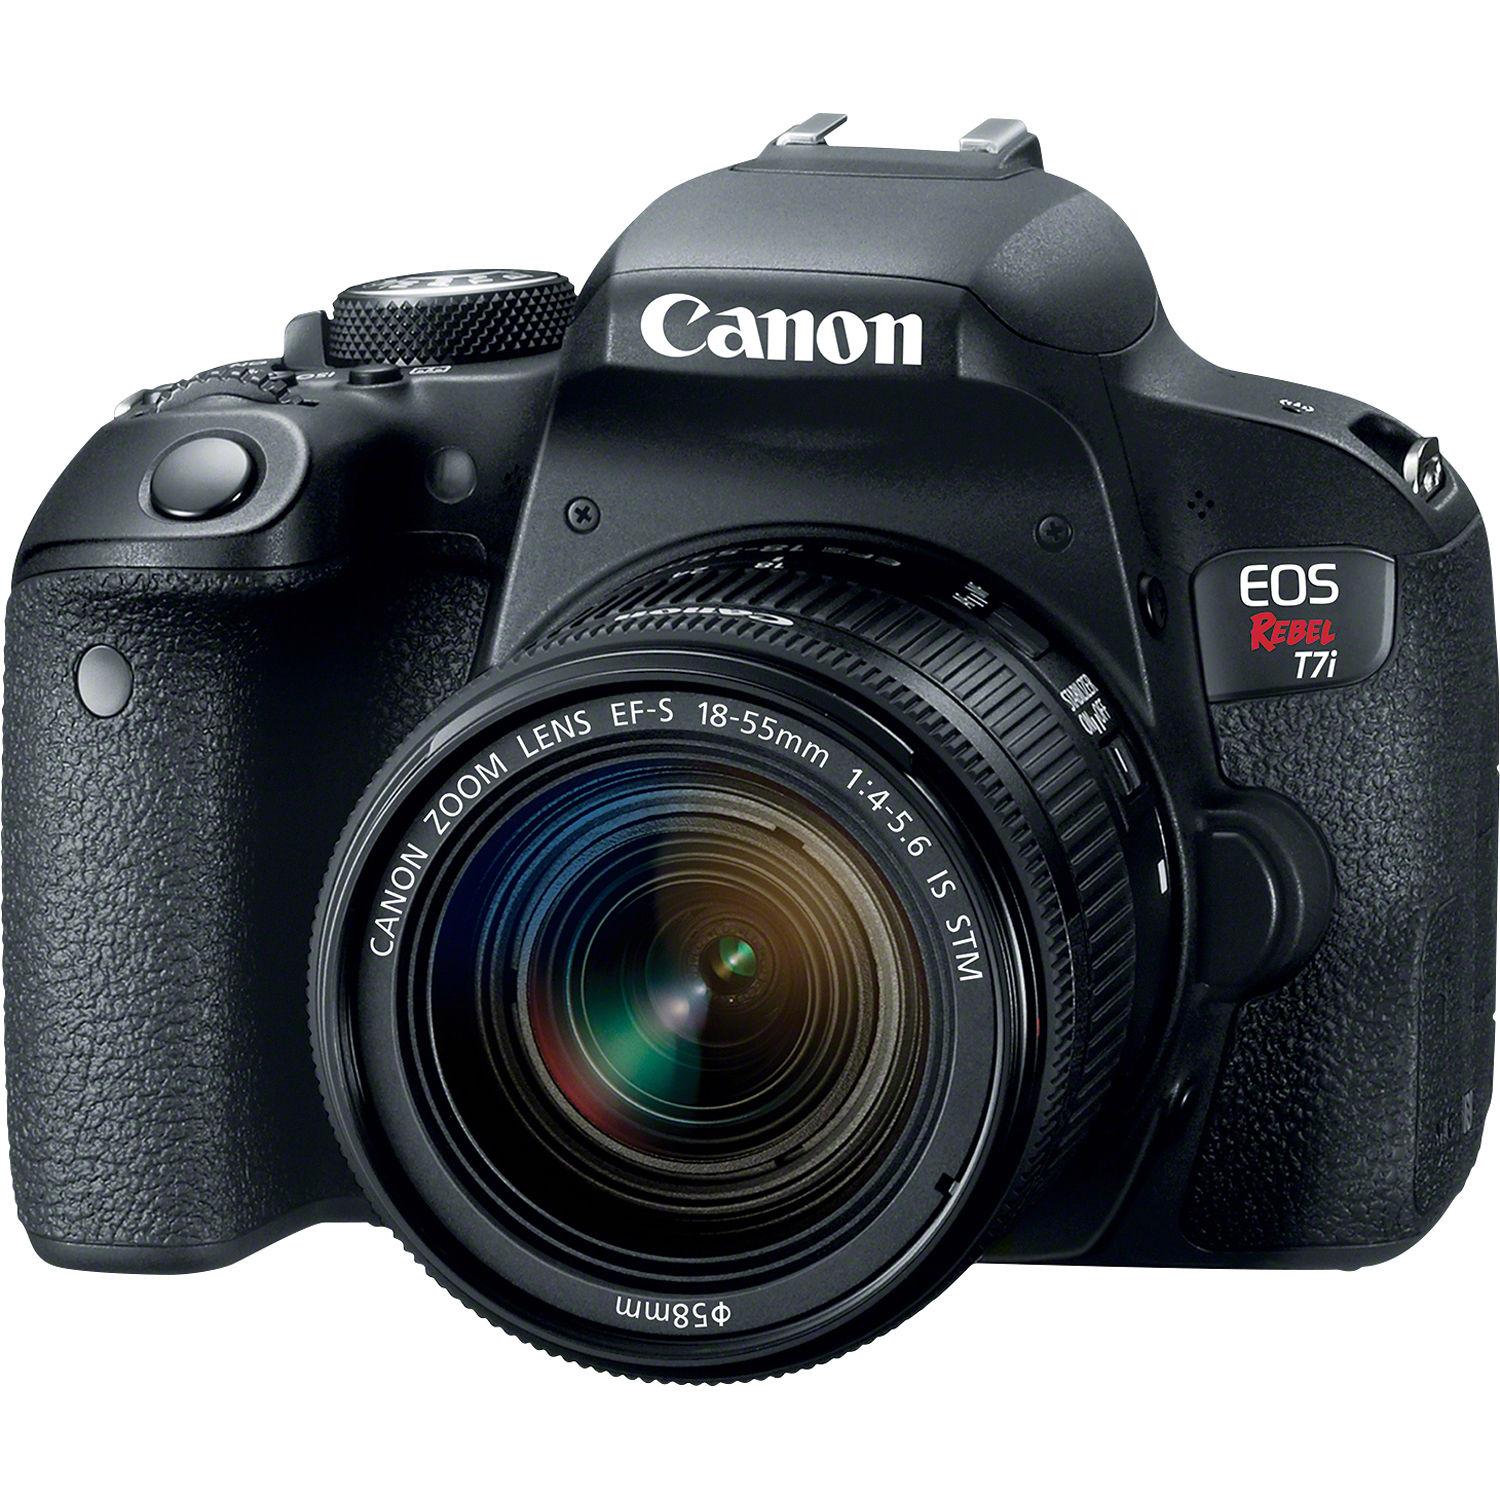 Canon EOS Rebel T7i DSLR Camera with 18-55mm Lens 1894C002 B&H